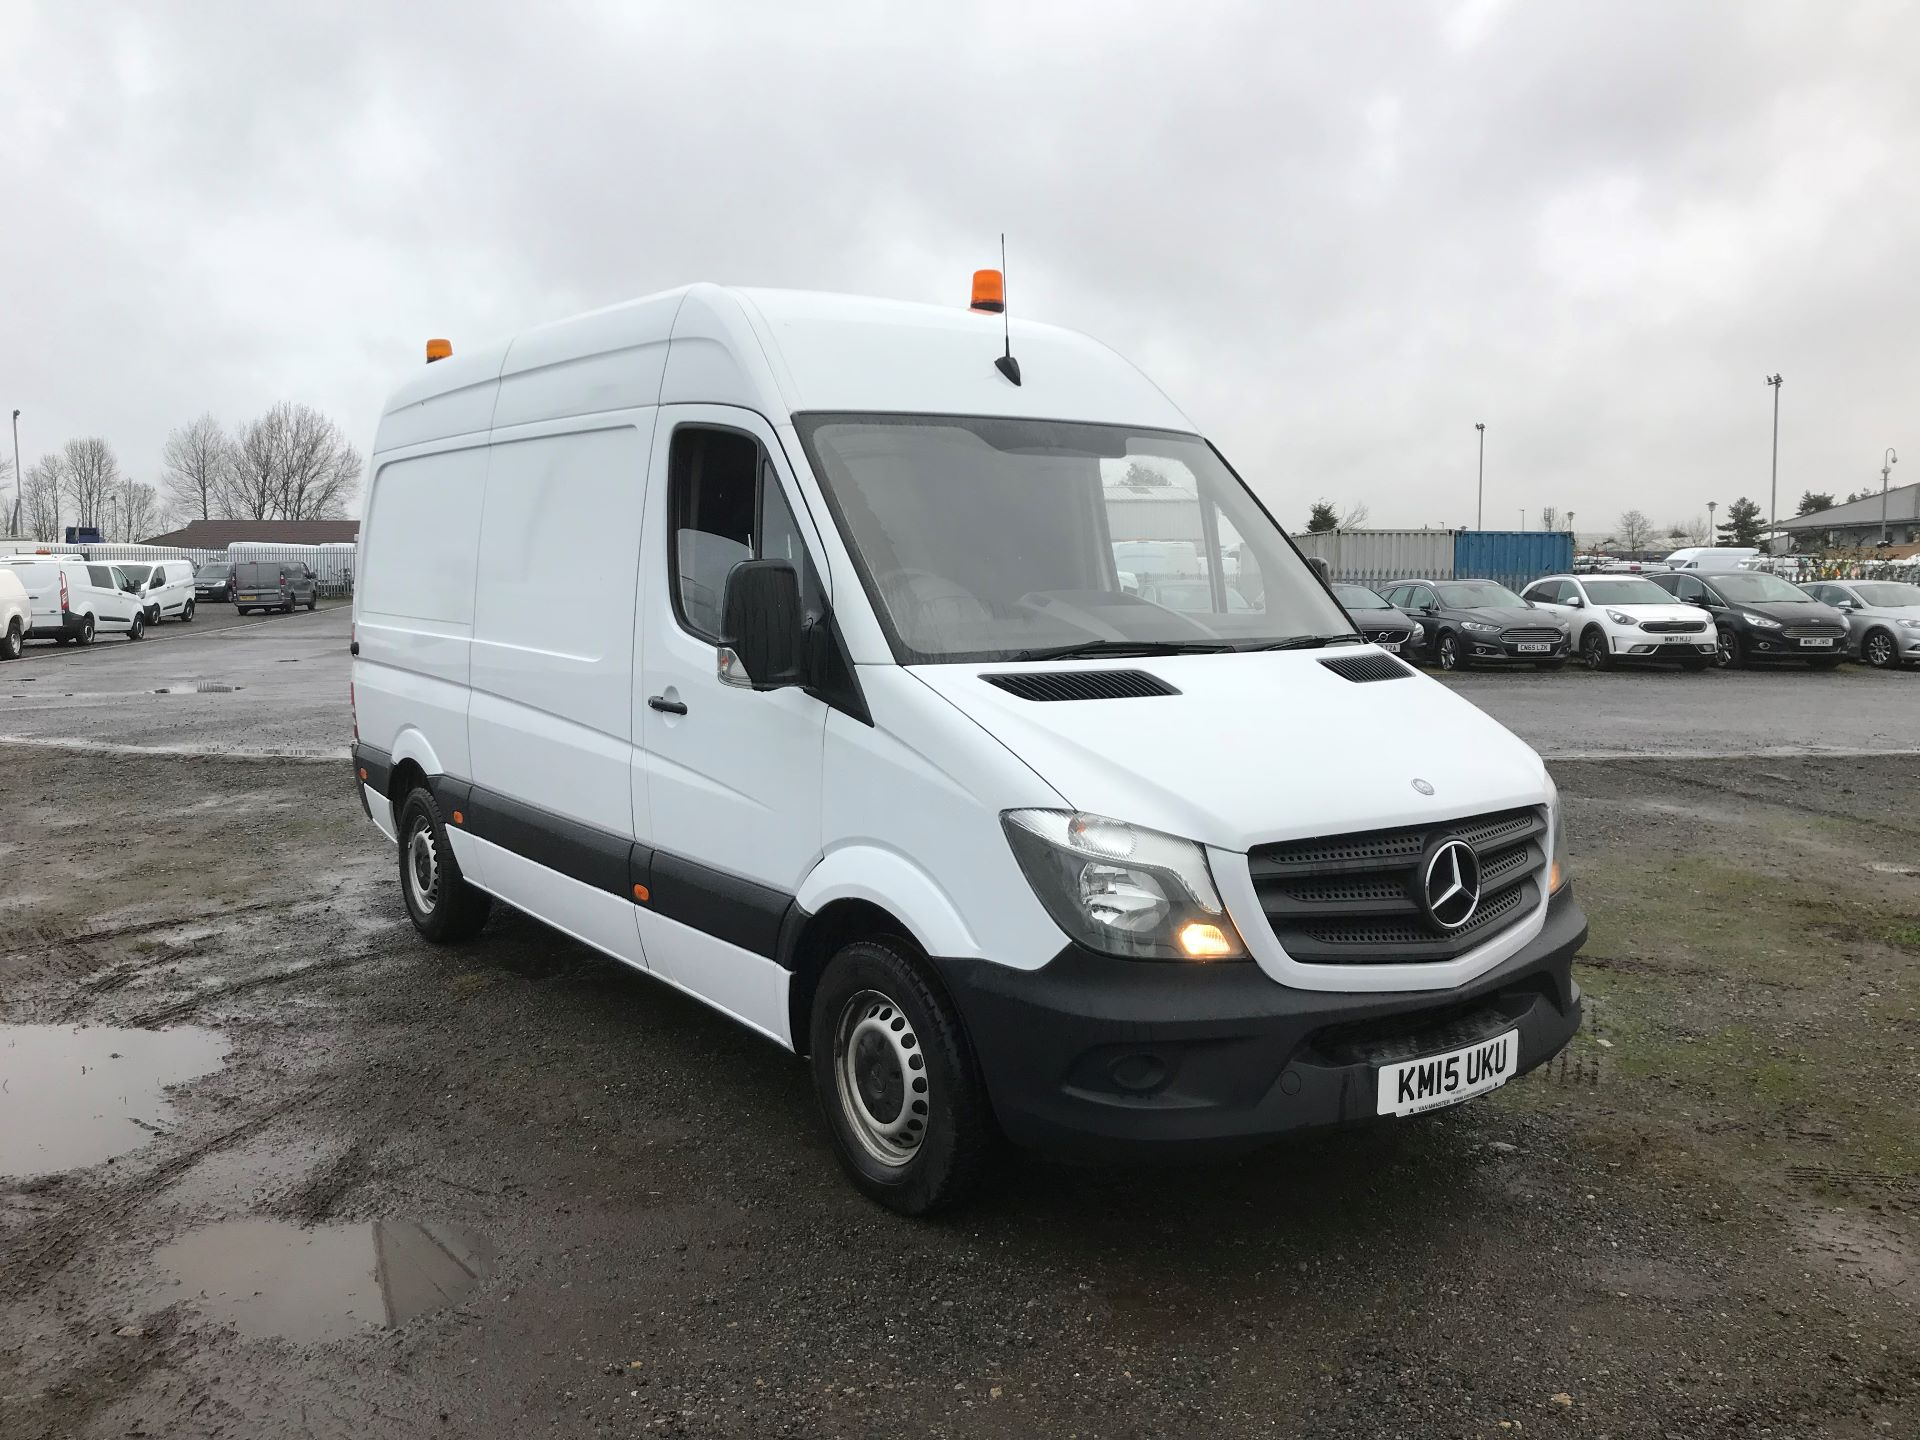 2015 Mercedes-Benz Sprinter 3.5T High Roof Van (KM15UKU)